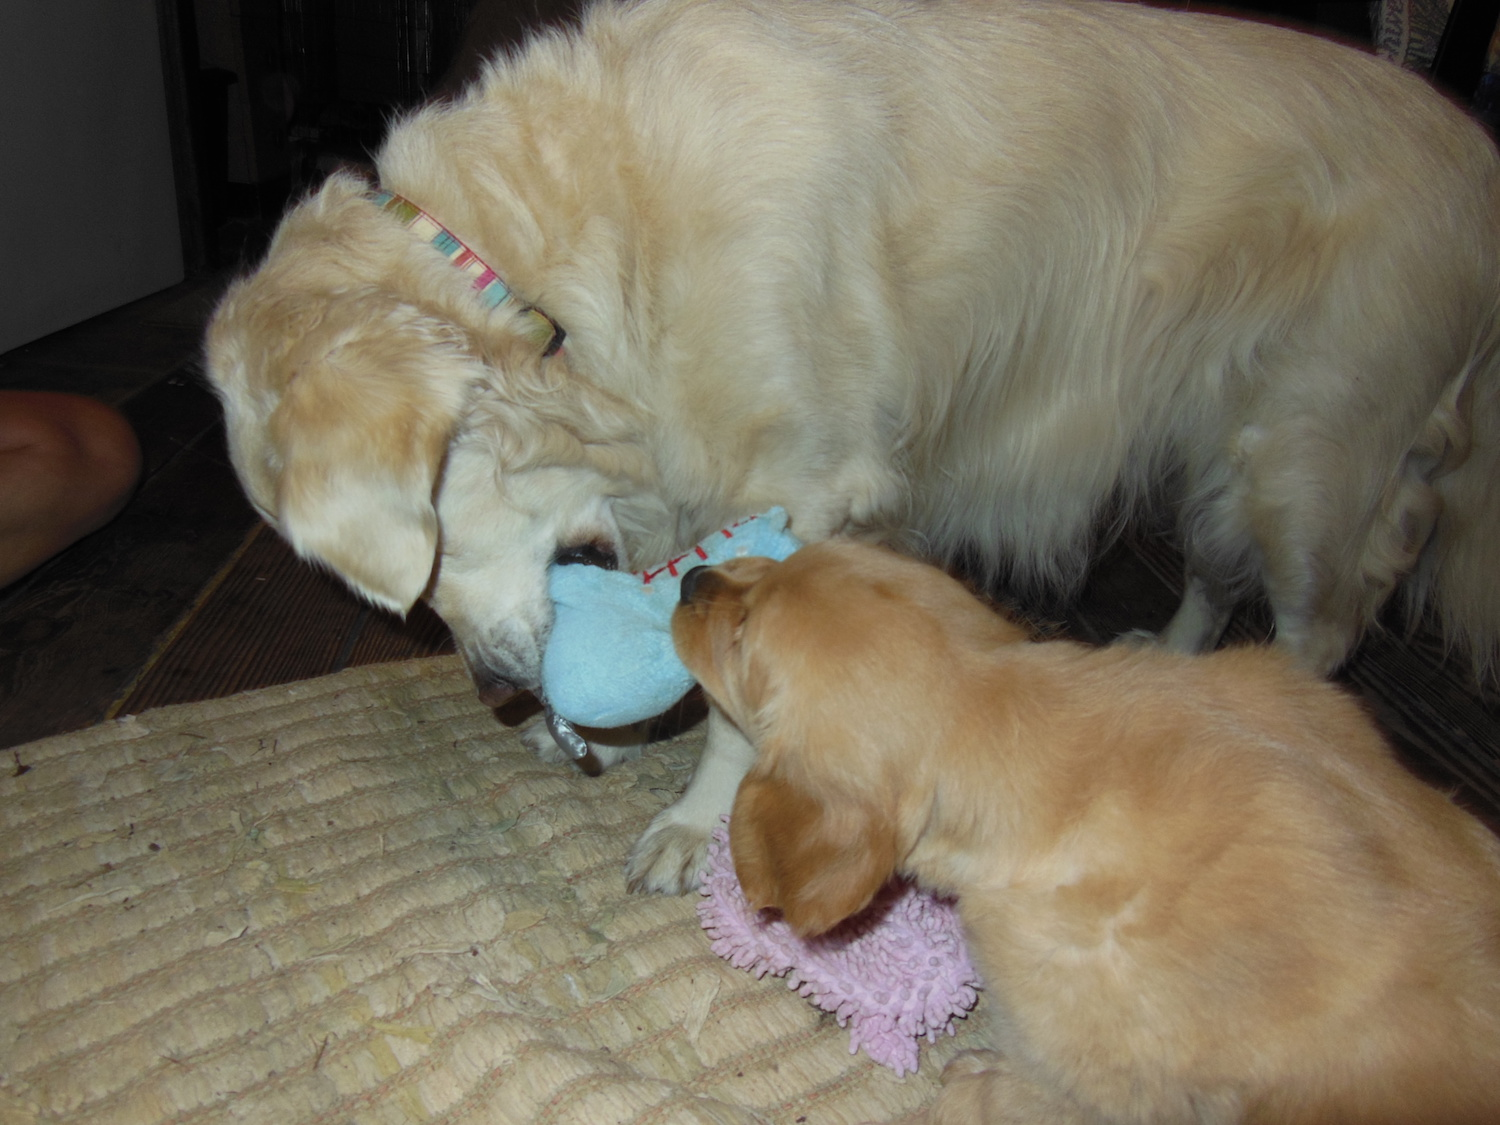 Bringing A Puppy Into Home With Older Dog